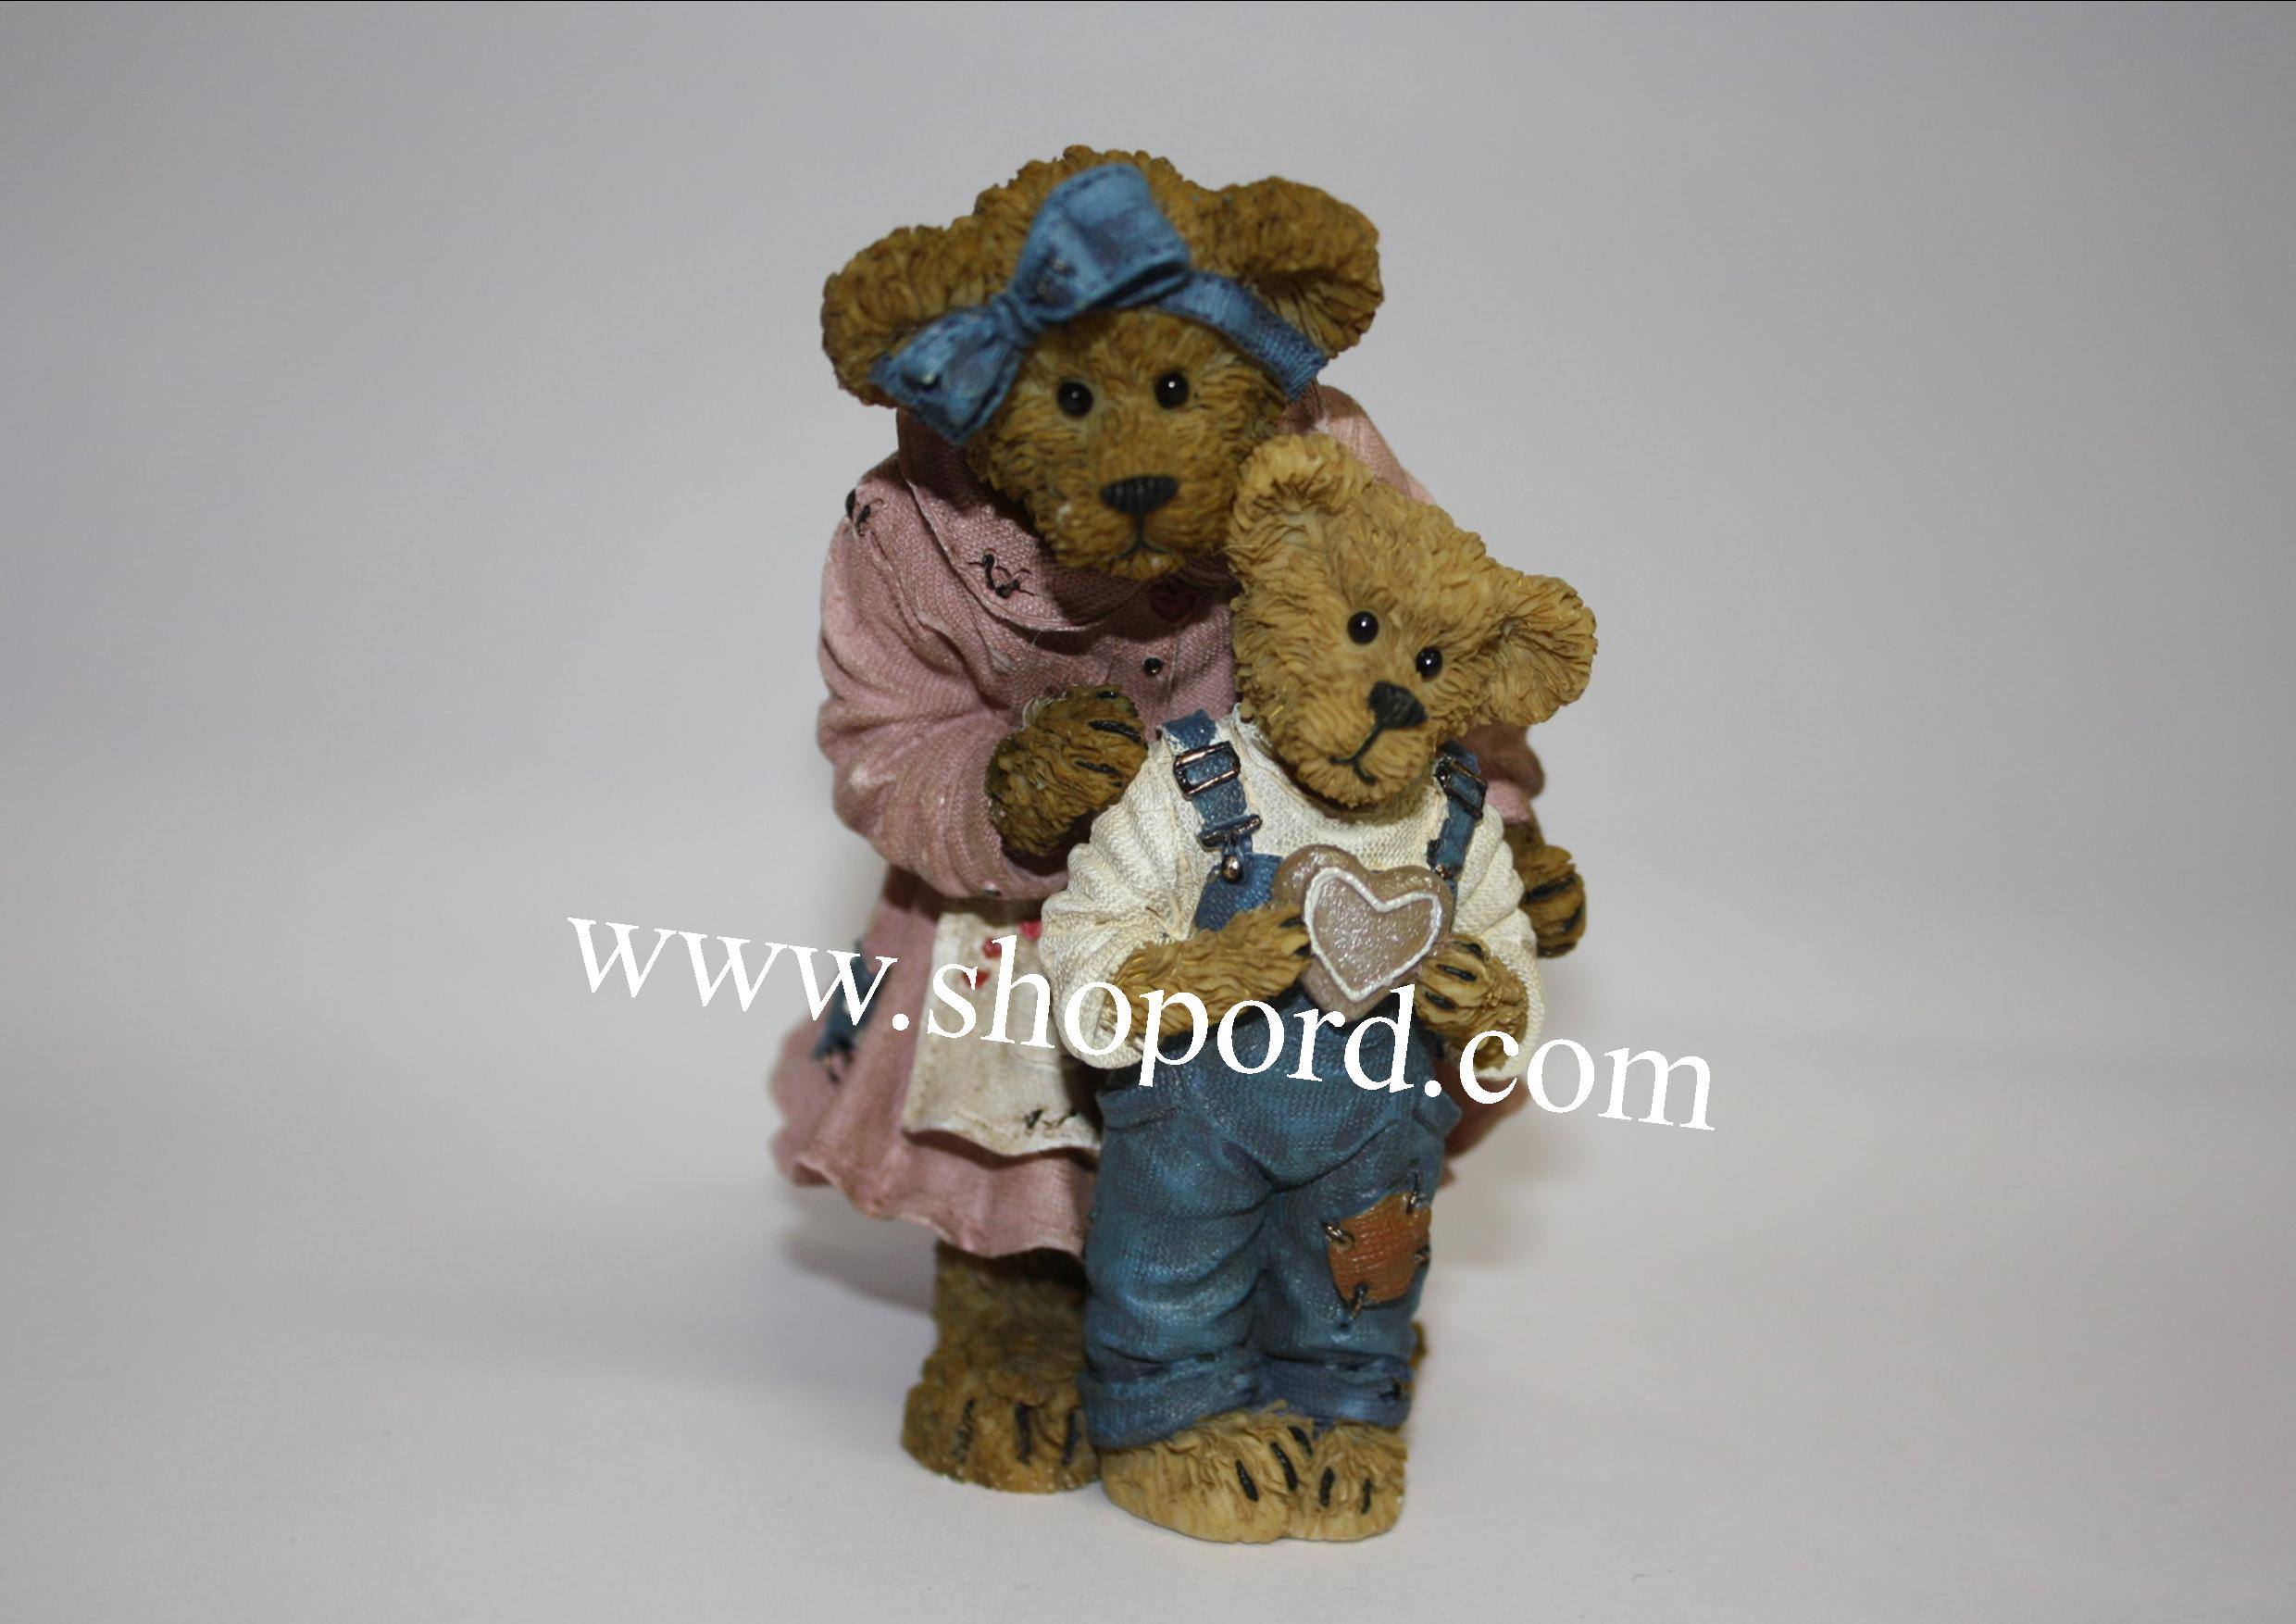 Boyds The Bearstone Collection - Grandma Bearybake with Lil Helper (Baked with Love) #4027345